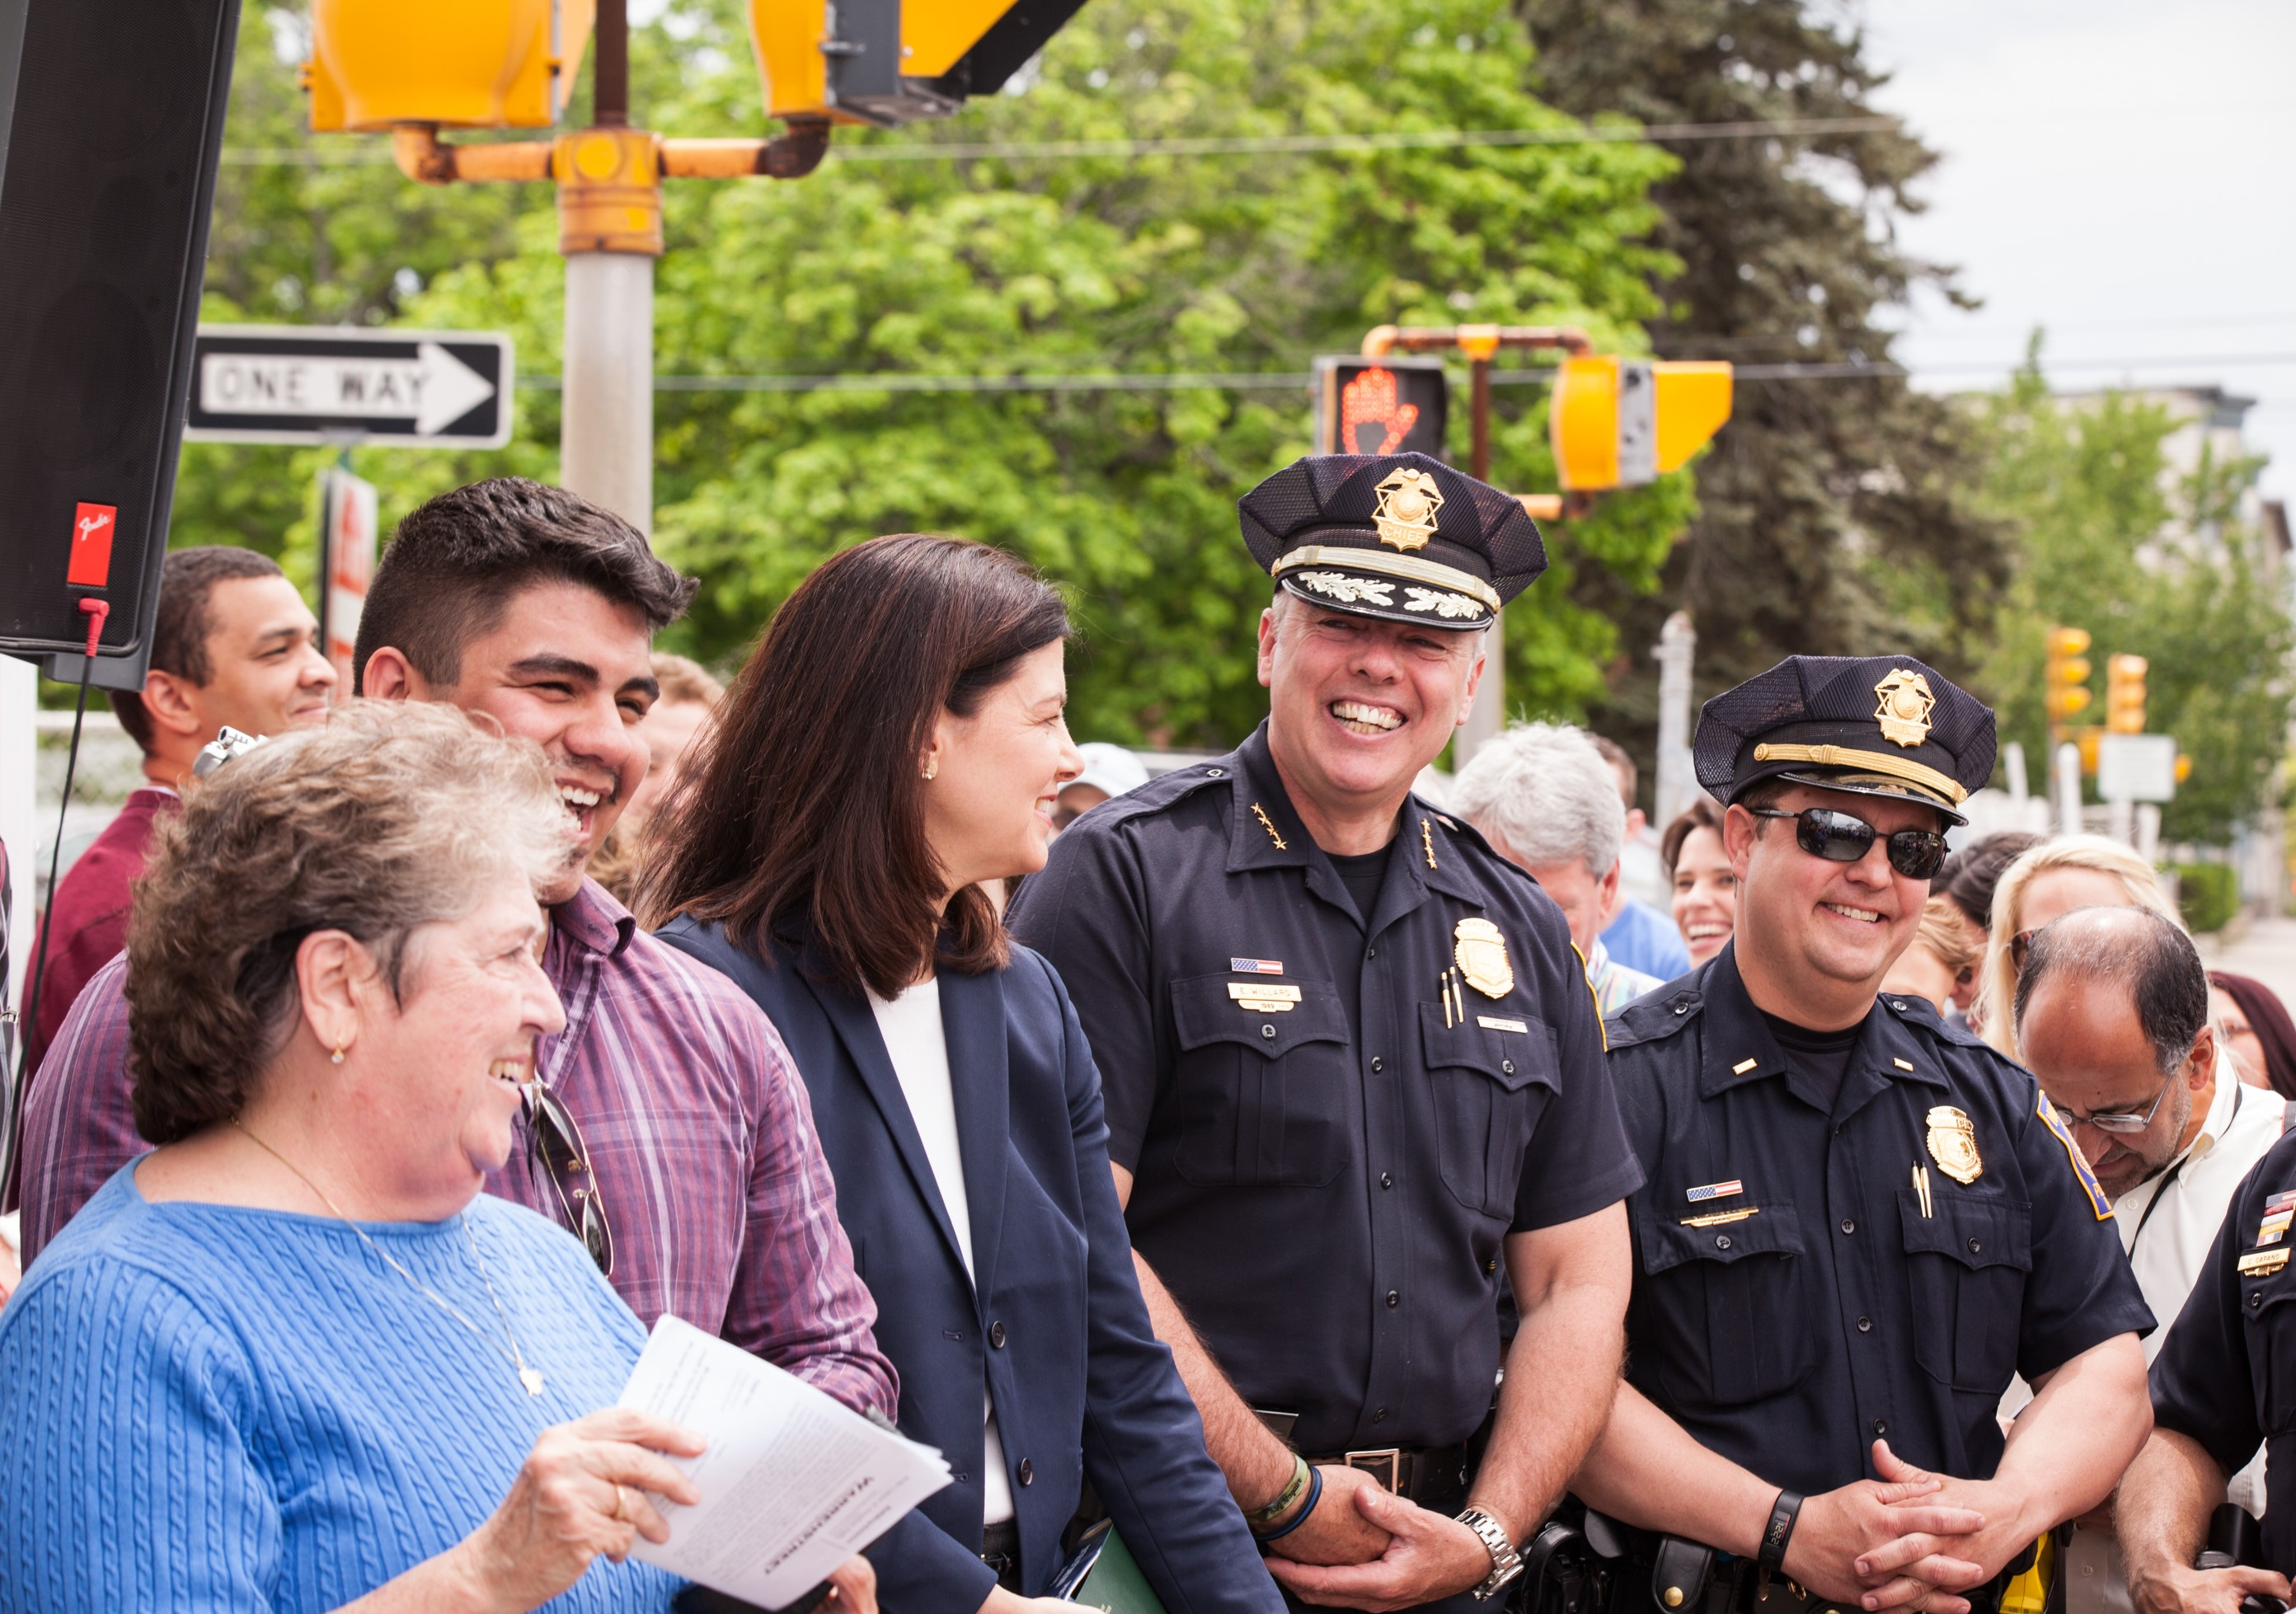 Pictured from left to right, MaryAnn Briggs (mother of Michael Briggs who the building is named for), Gibran Ortiz Perez (MPAL boxing coach), US Senator Kelly Ayotte, Manchester Police Chief Nick Willard and Manchester Police Lieutenant Brian O'Keefe celebrate the kick-off of Building on Hope's Reveal Day at MPAL. (Photo: John Benford Photography)